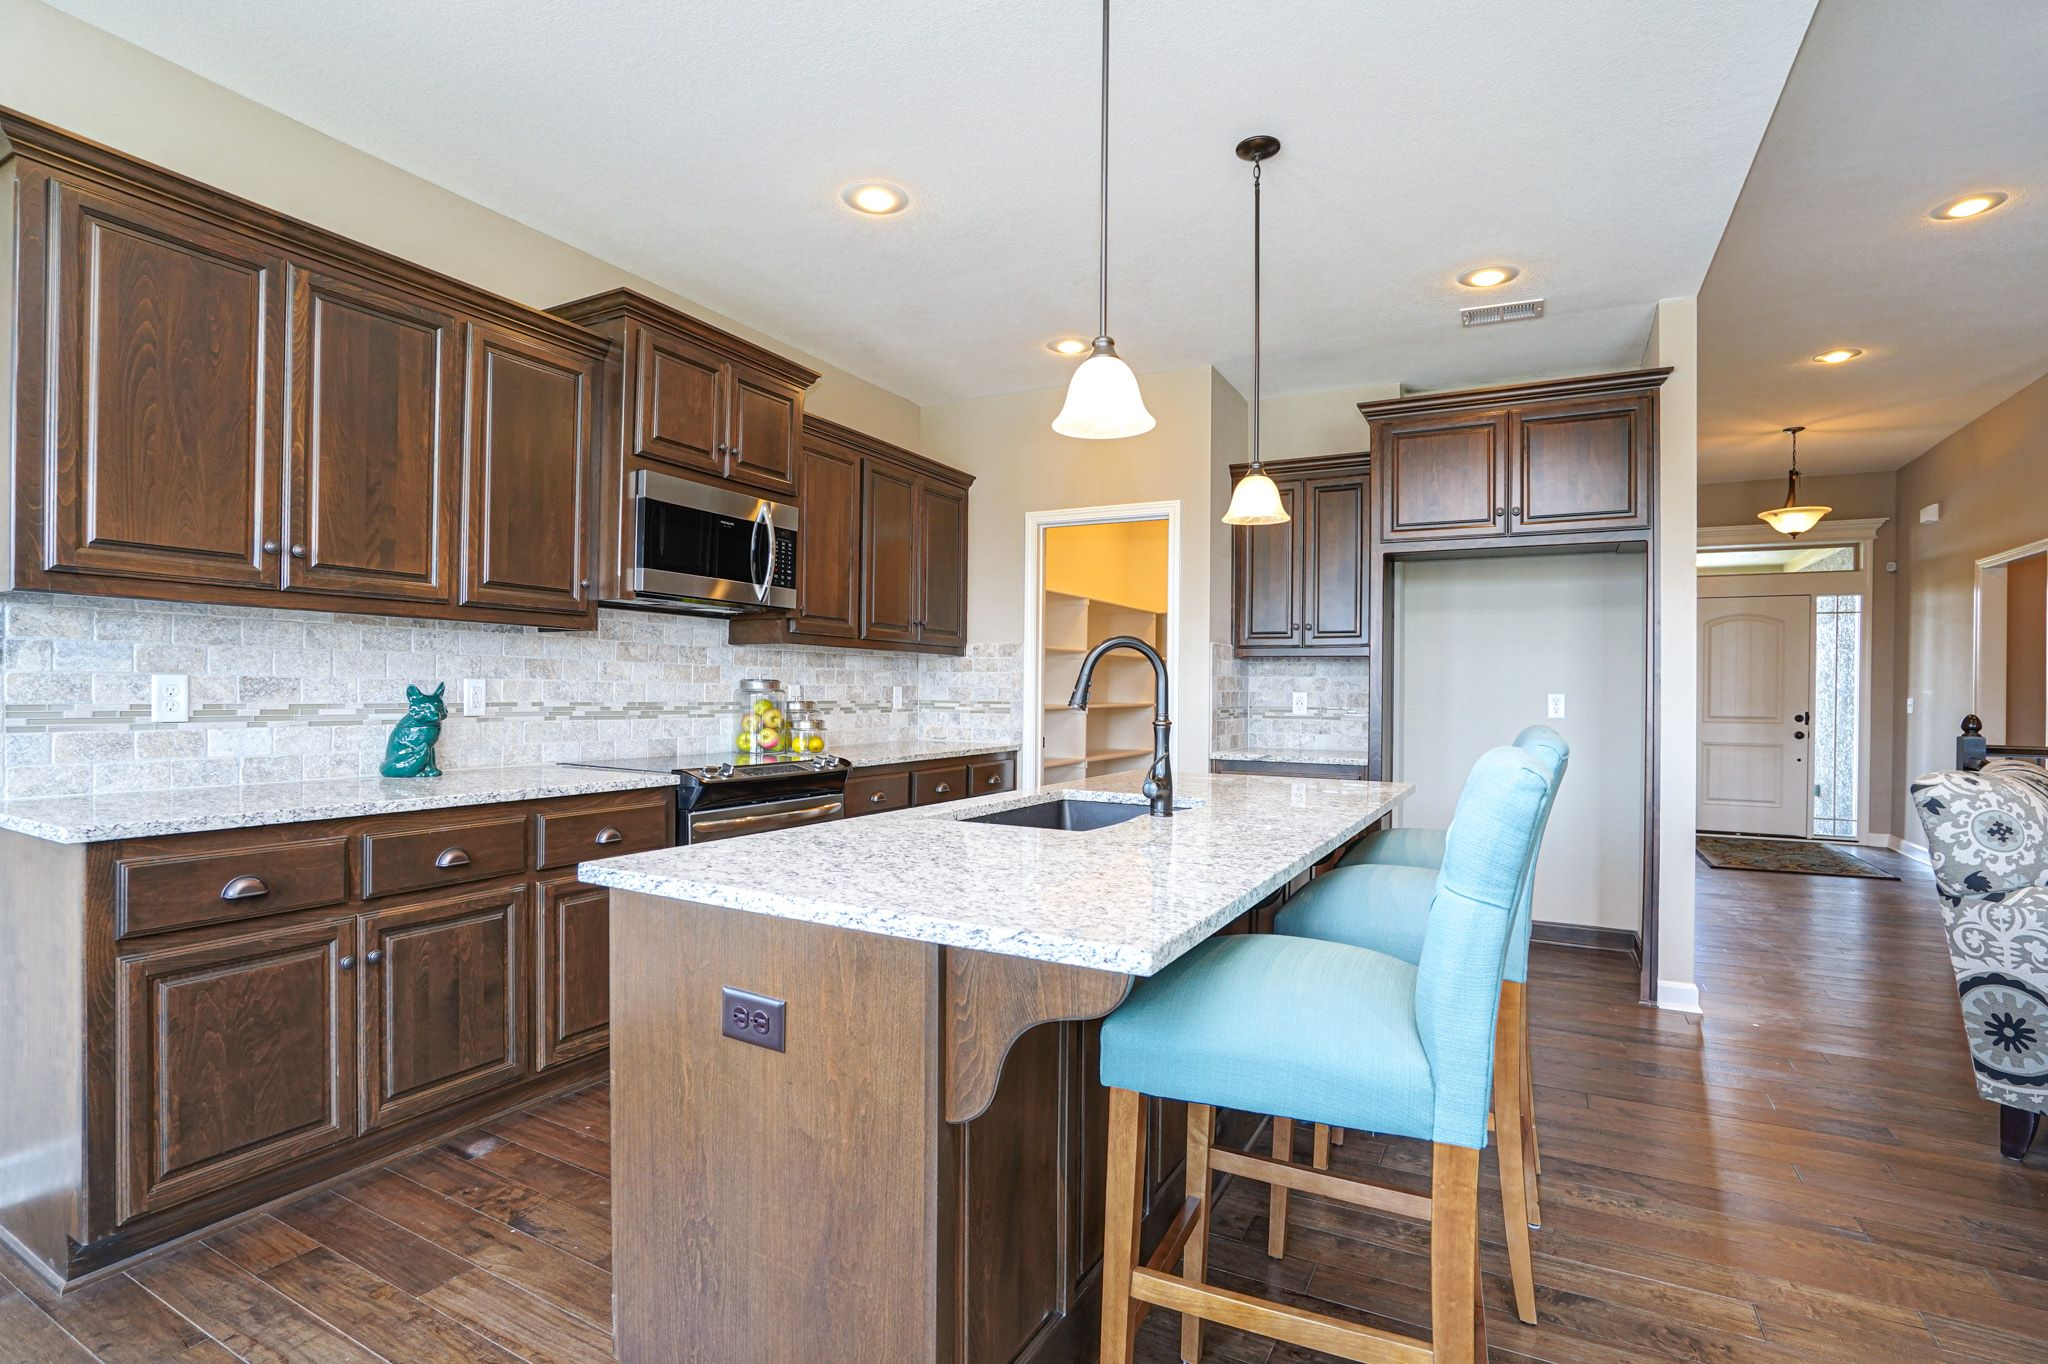 Kitchen featured in the Cypress - Care free By Summit Homes in Kansas City, MO